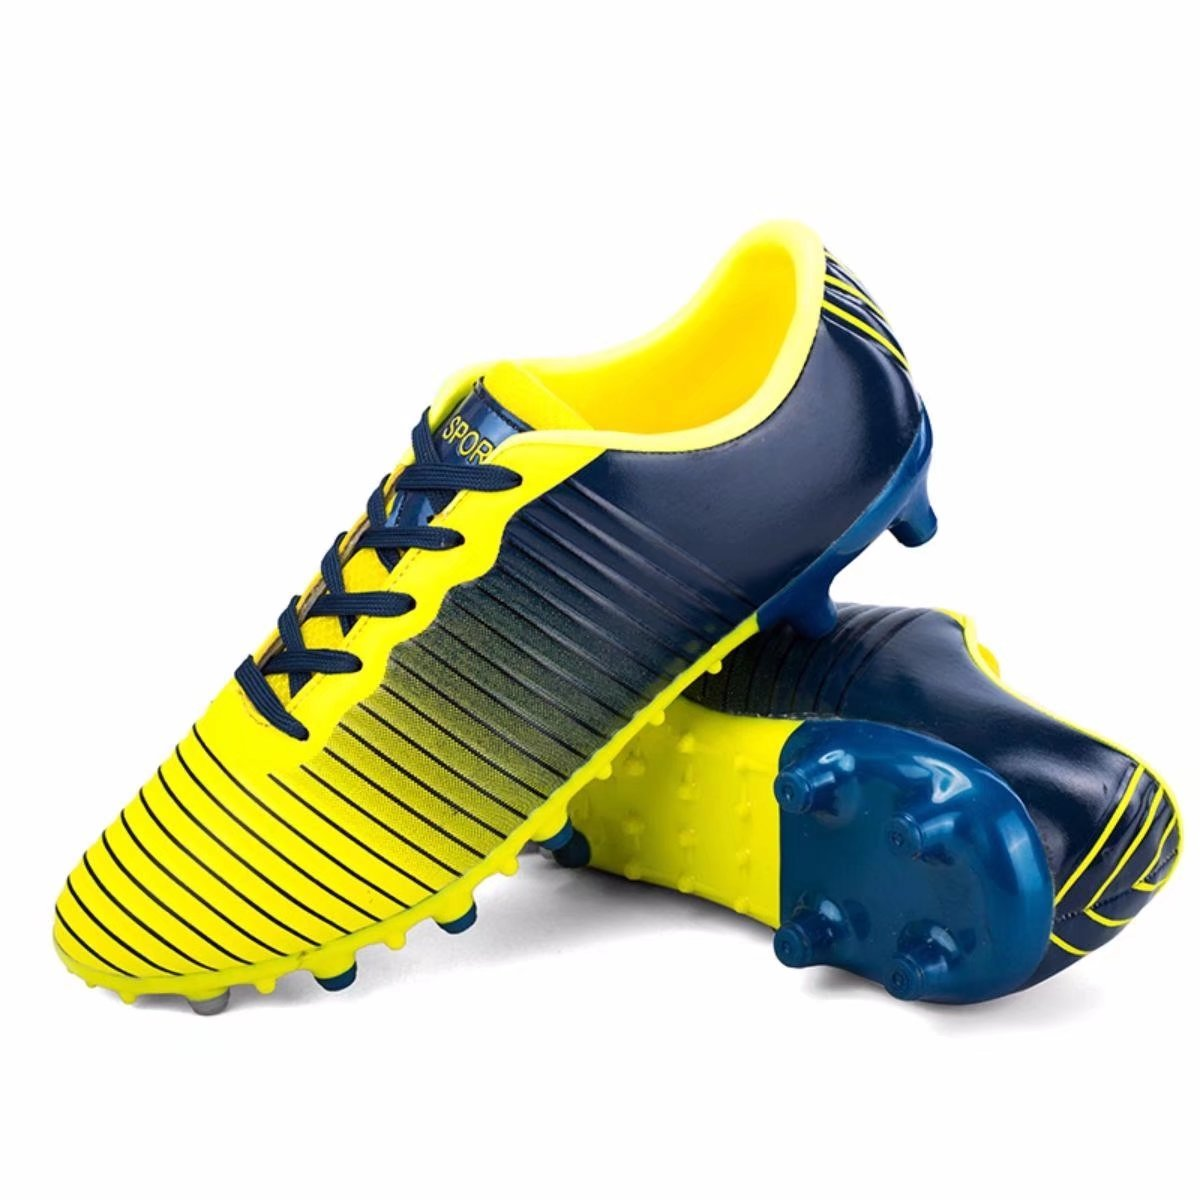 Shoes CN メンズ B07CBZ3182 8 D(M) US|Blue-yellow Blue-yellow 8 D(M) US